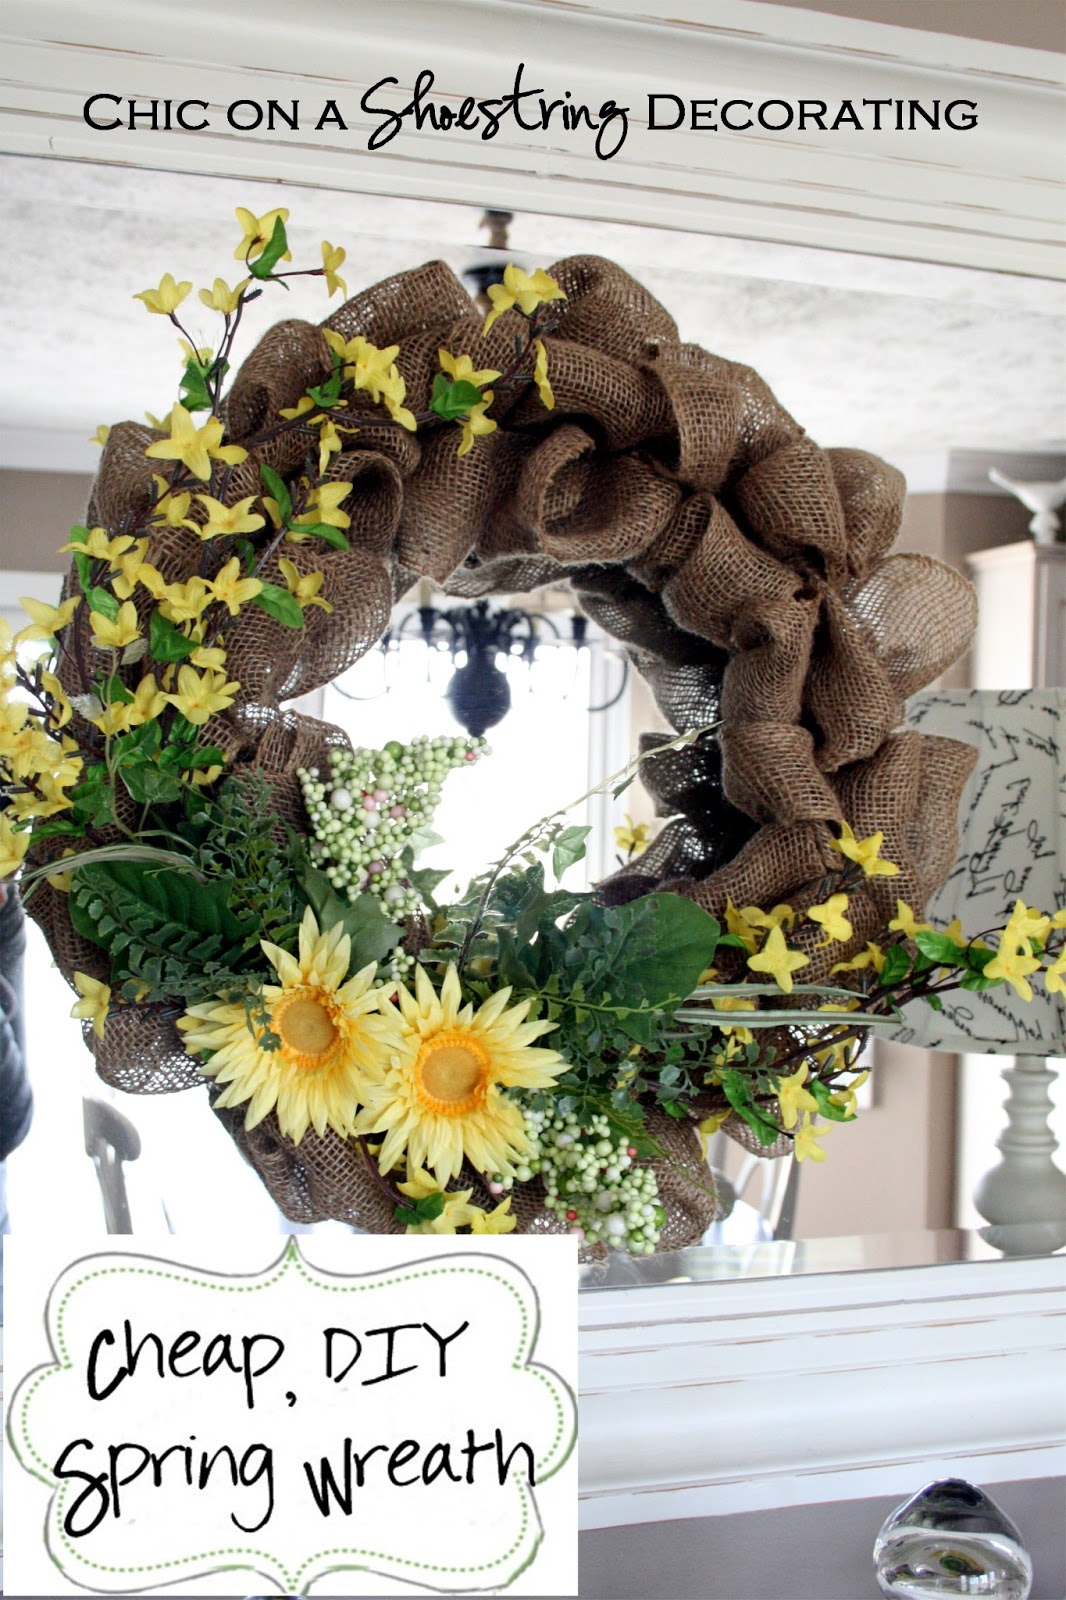 Chic on a shoestring decorating cheap diy spring wreath tutorial diy burlap spring wreath tutorial chic on a shoestring decorating izmirmasajfo